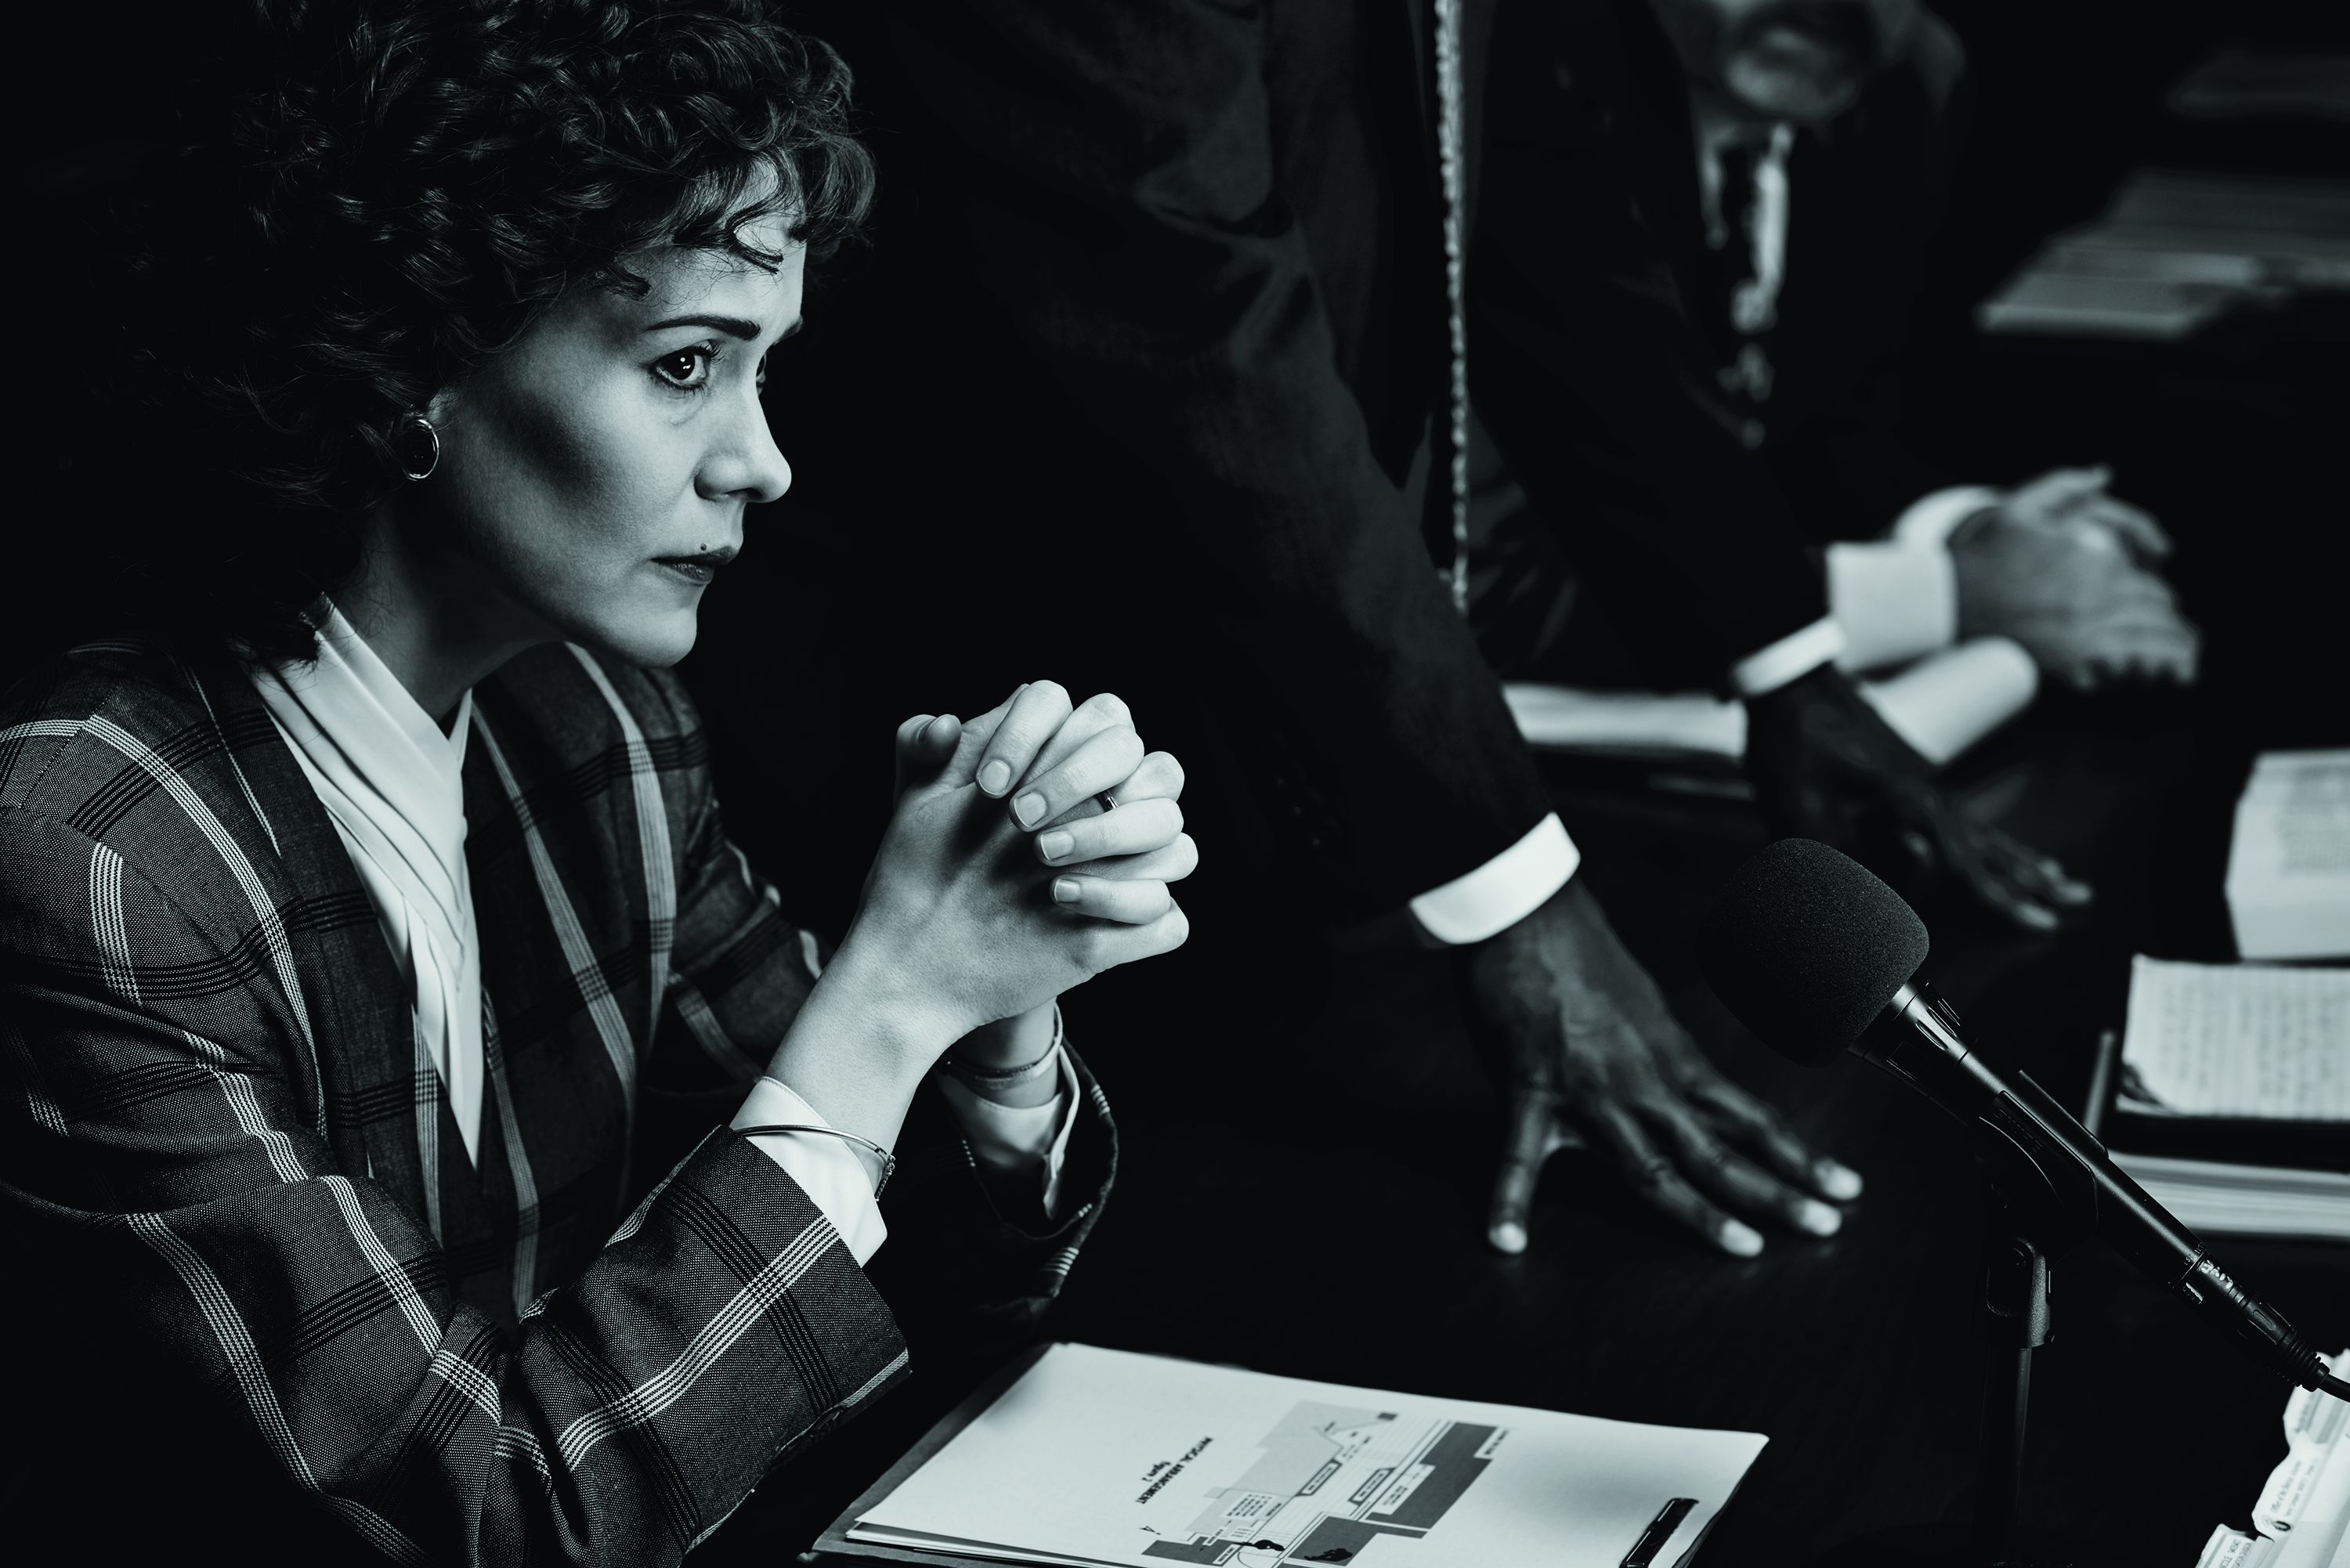 Sarah Paulson is remarkable as Marcia Clark